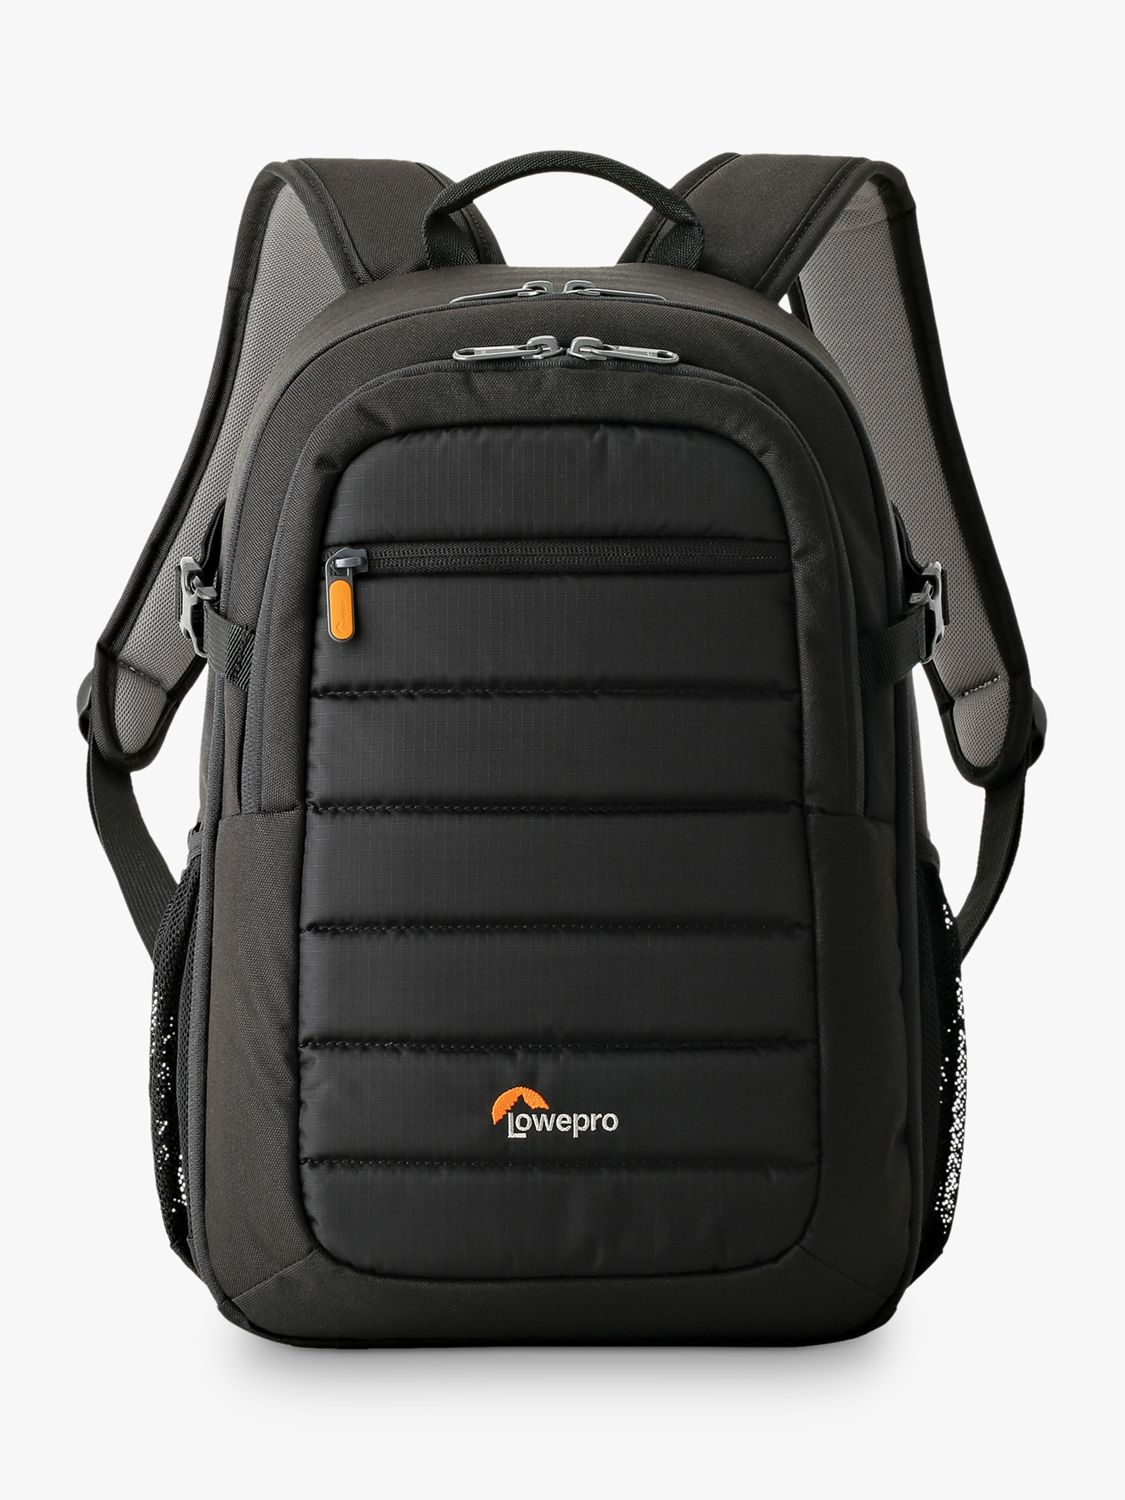 Lowepro Lowepro Tahoe BP 150 Camera Backpack